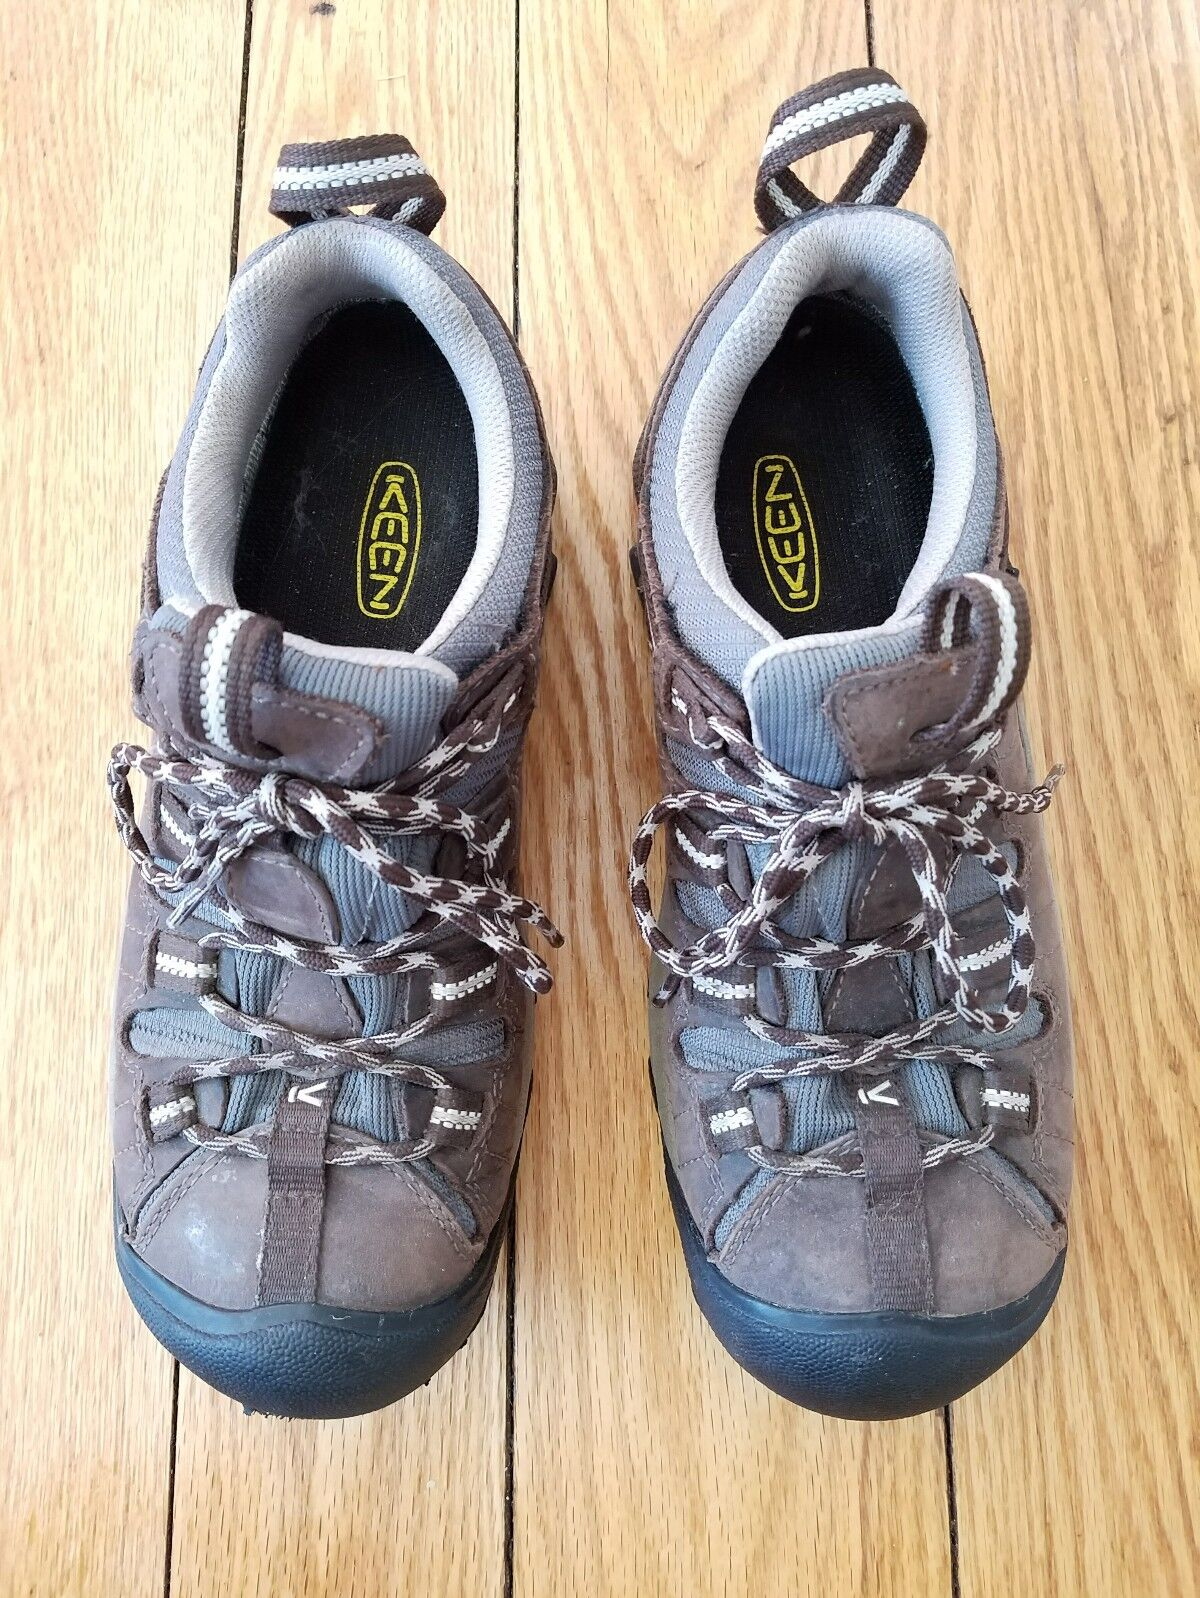 Keen Dry Hiking Trail Walking  Outdoor shoes Sneakers Womens sz 8  fast delivery and free shipping on all orders